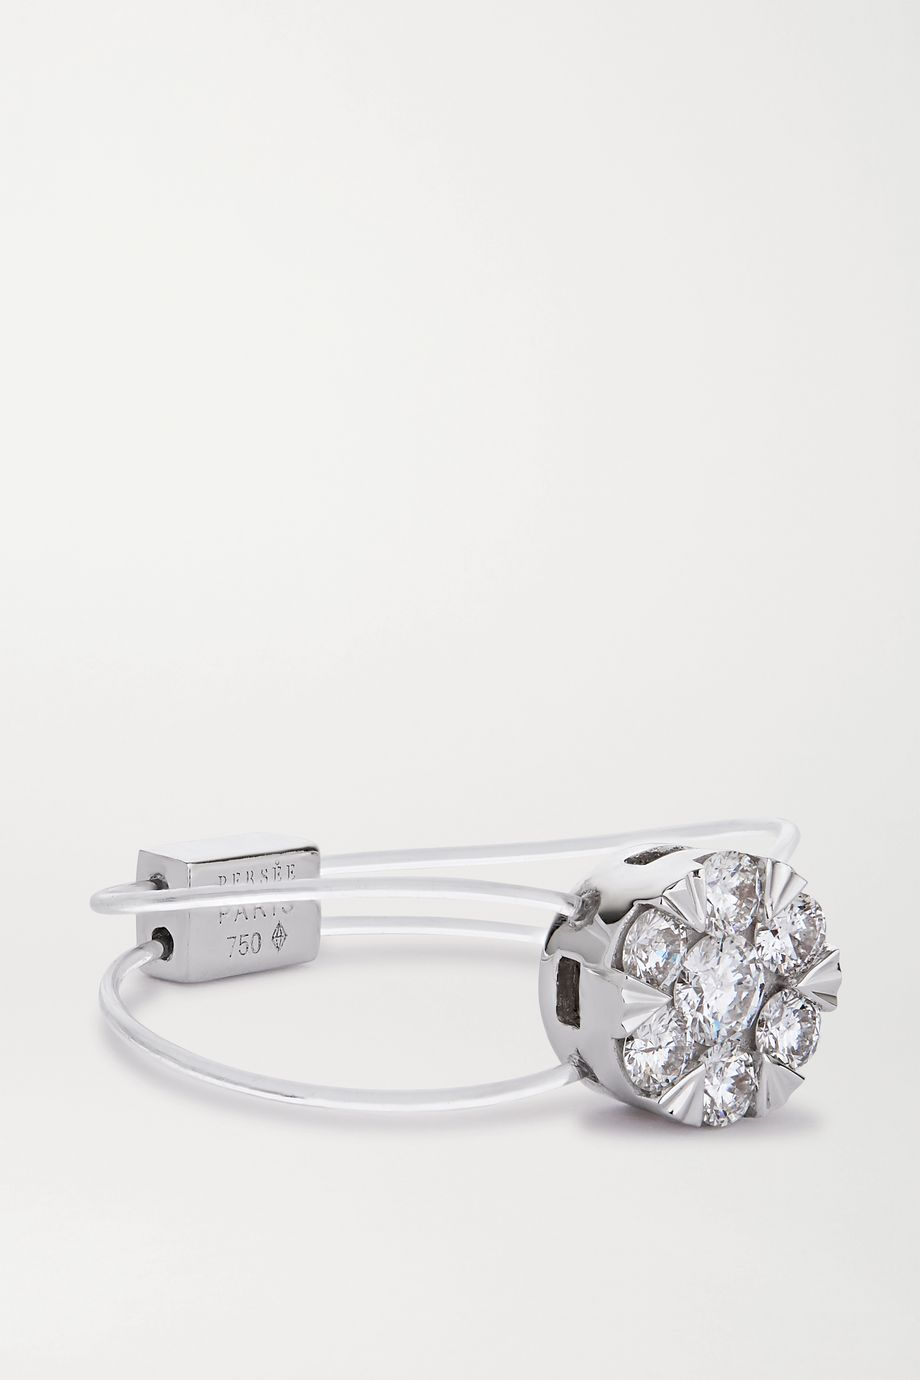 Persée Imagine 18-karat white gold diamond ring